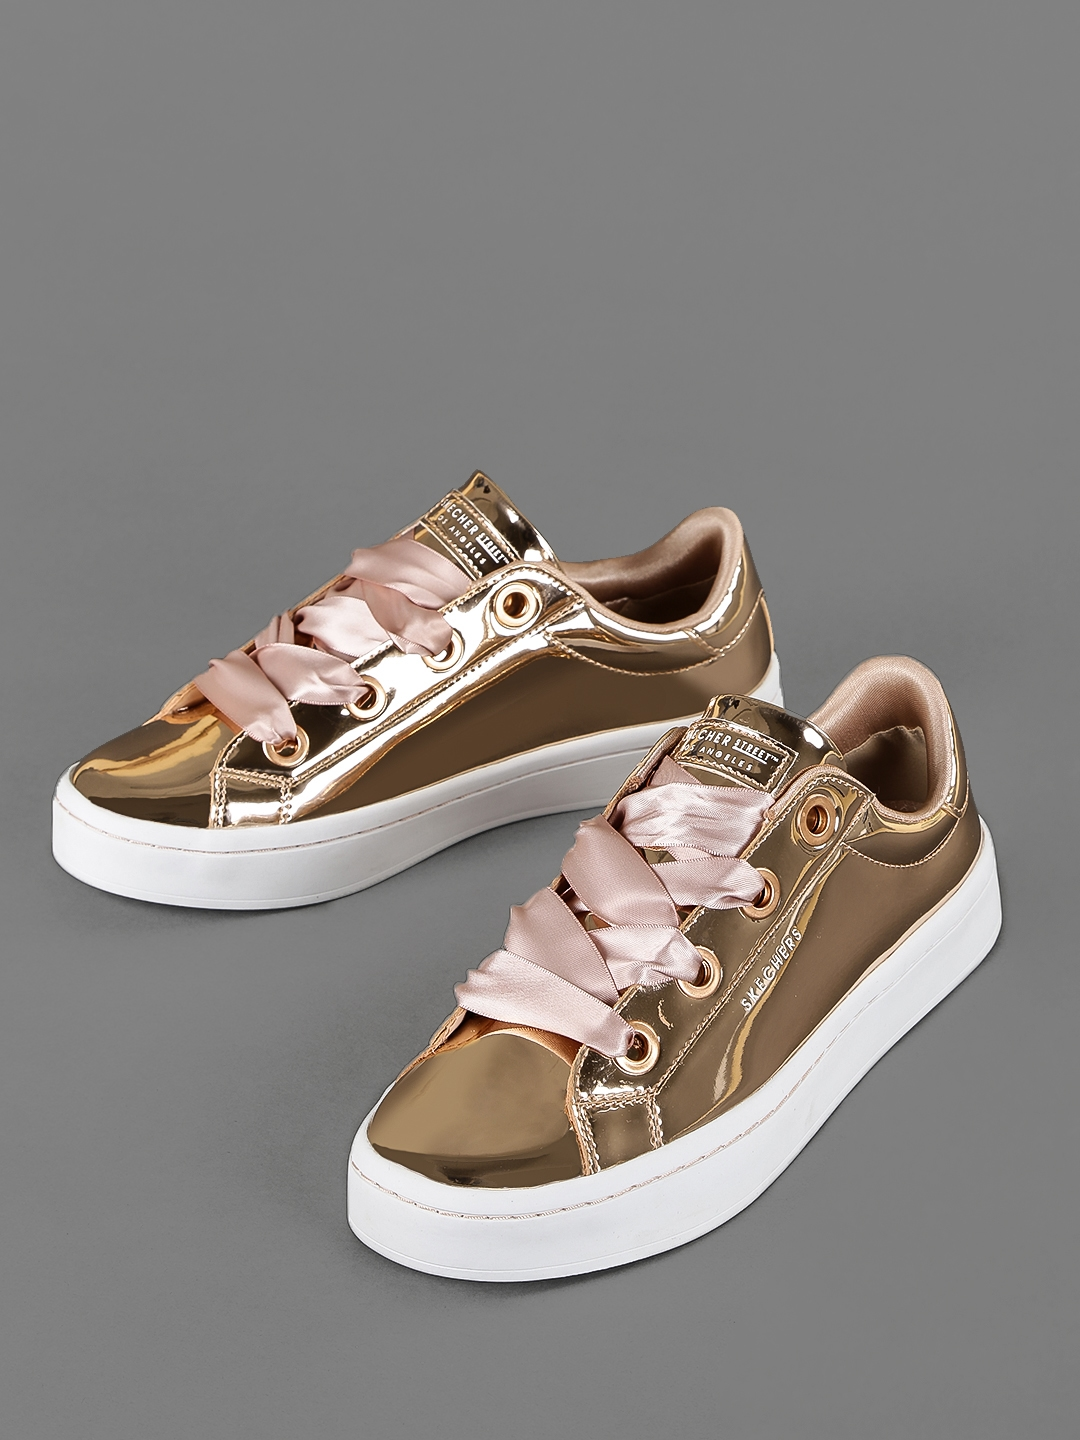 6e51bd6bb053 Buy Skechers Women Rose Gold Toned HI LITE Sneakers - Casual Shoes ...